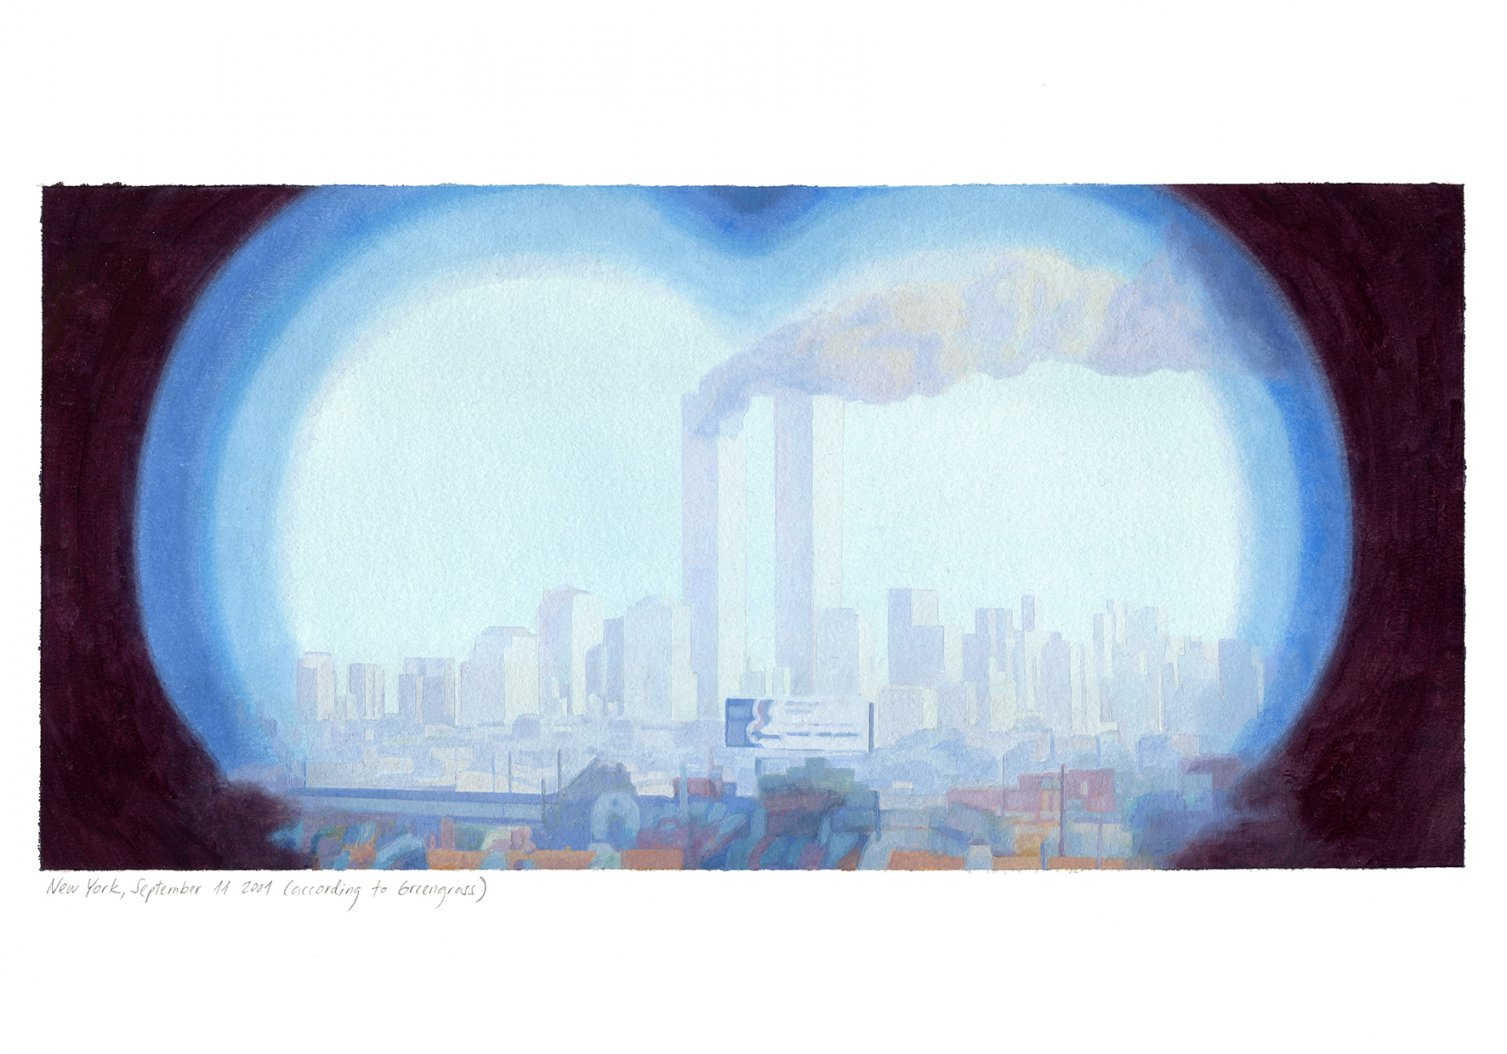 New York September 11 2001 (according to Greengrass) (2012) - Miguel Aguirre